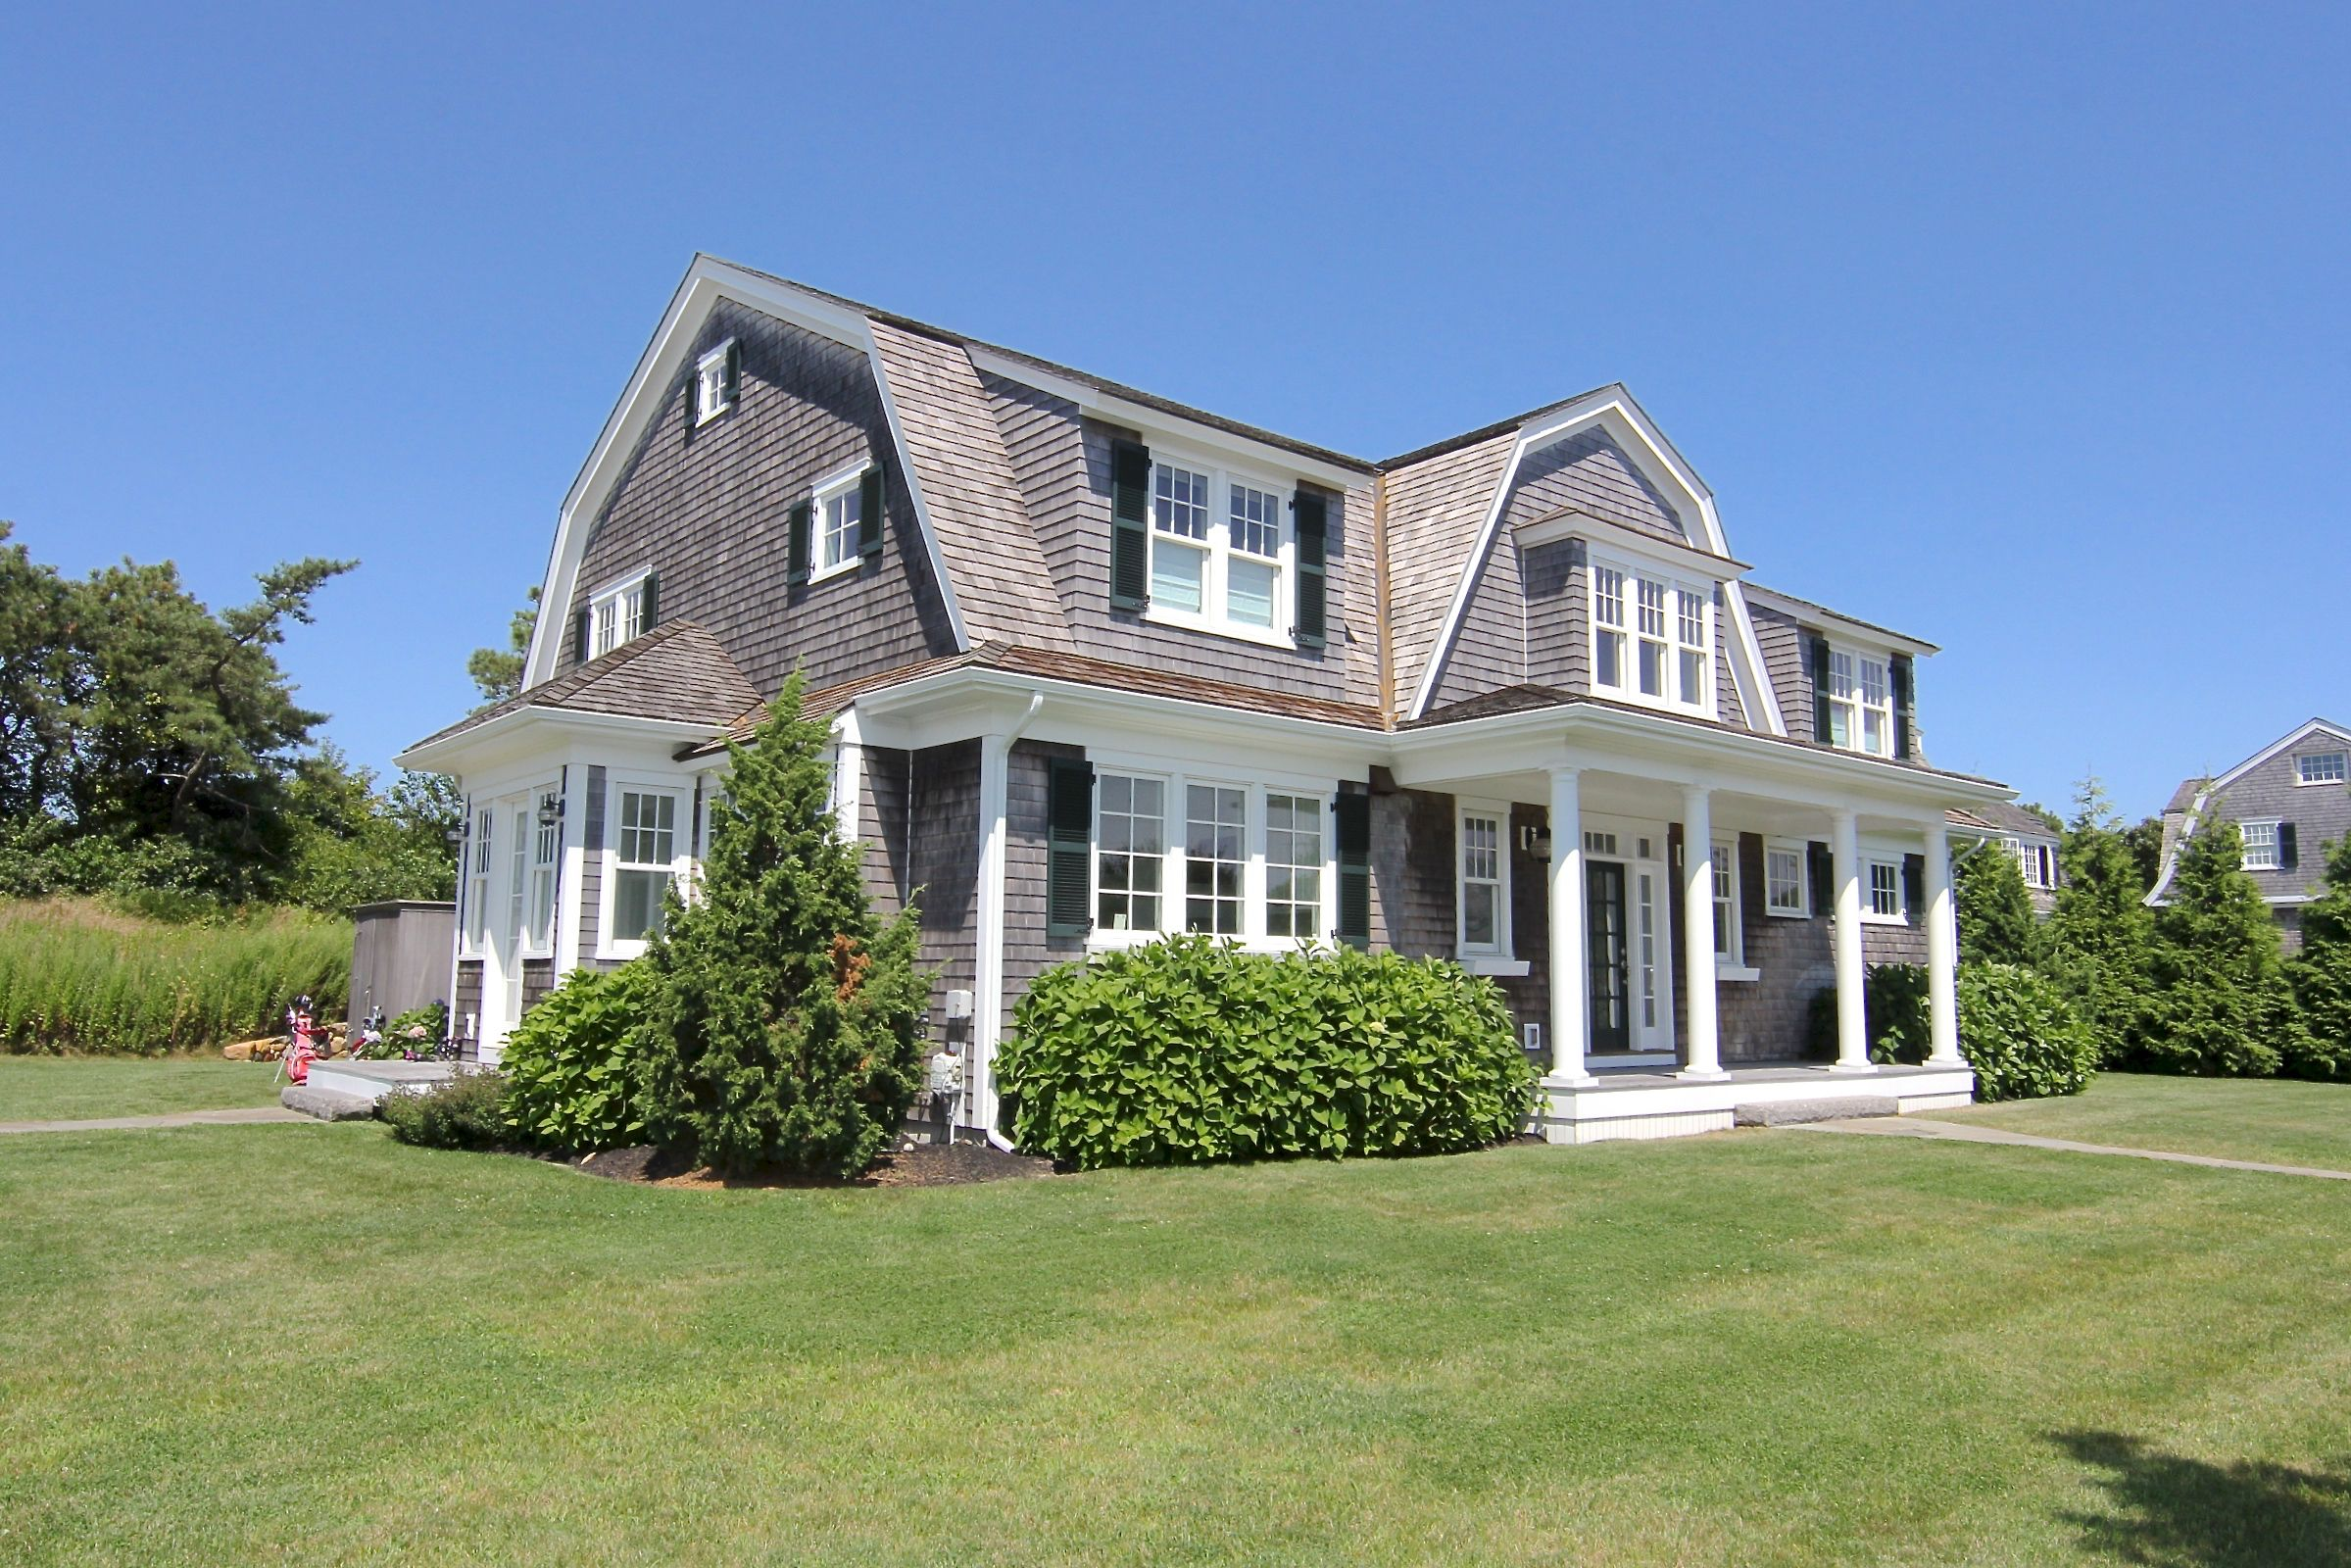 Single Family Home for Sale at 18 Field Club Drive 18 Field Club Drive Edgartown, Massachusetts,02539 United States